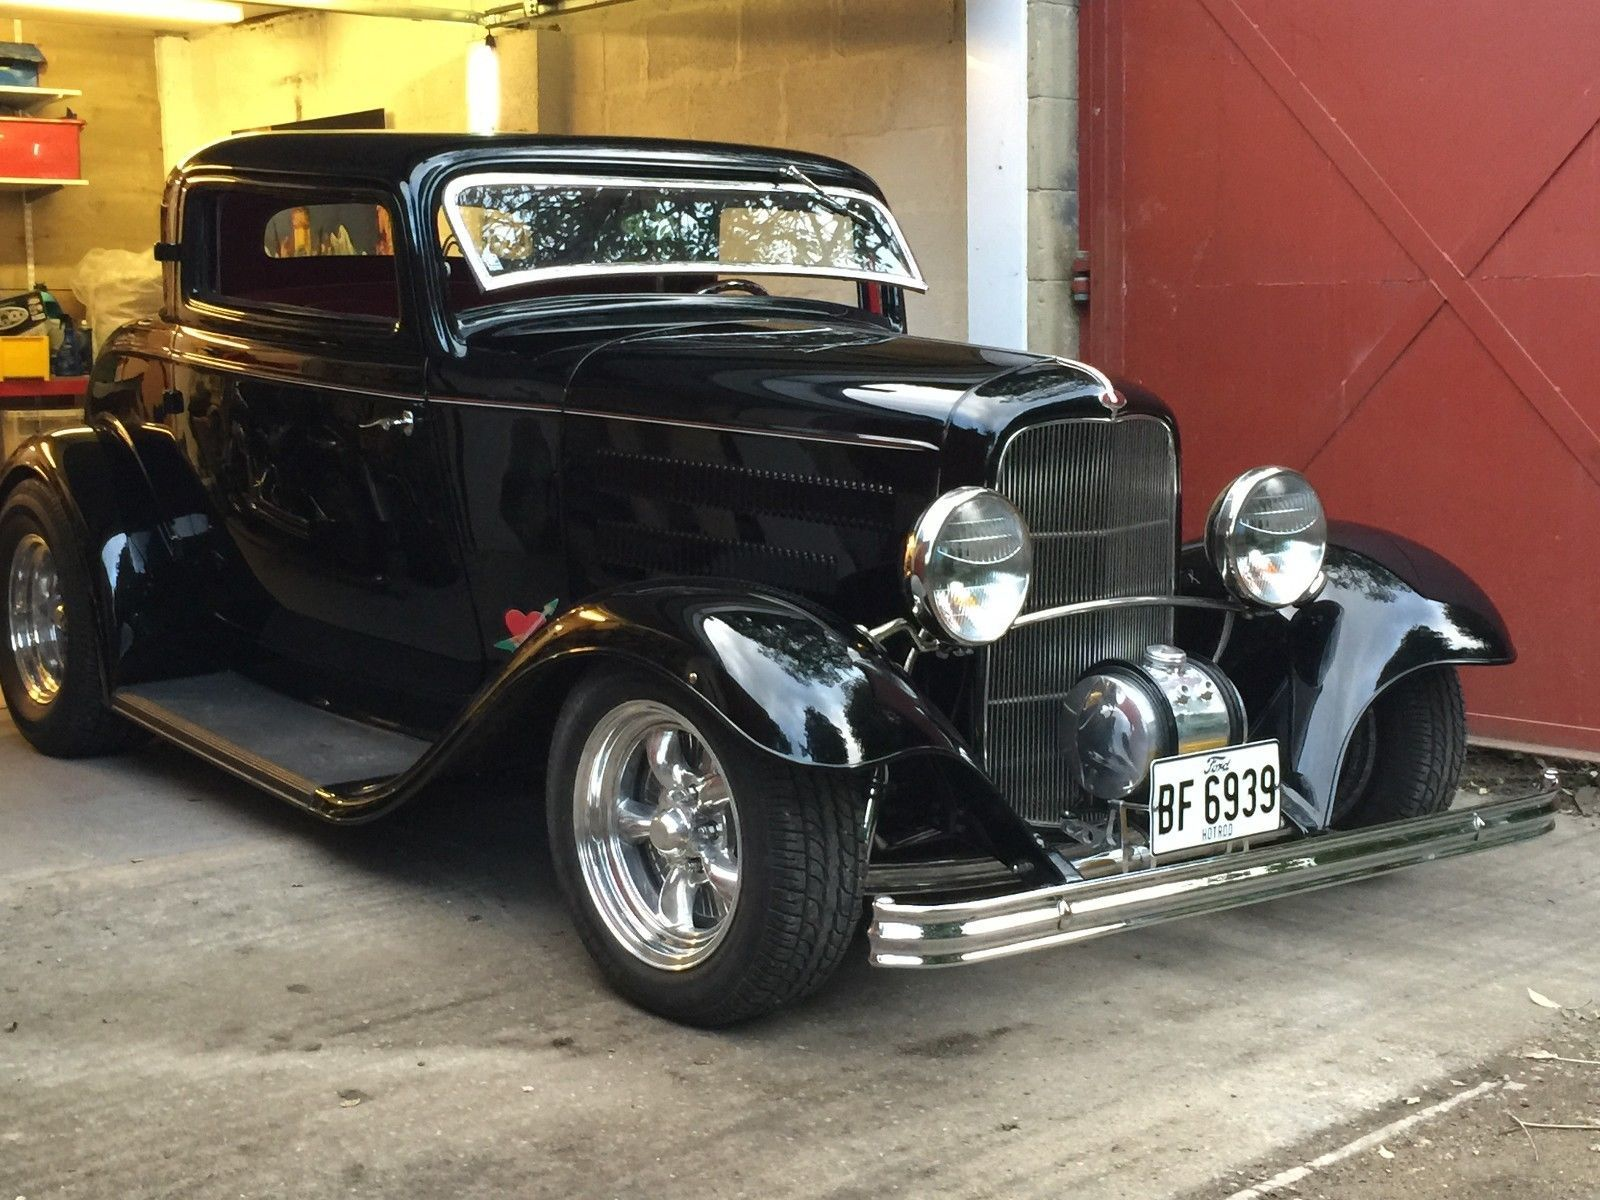 eBay: 1930's Ford 3-window chopped deuce coupe #pre1960s